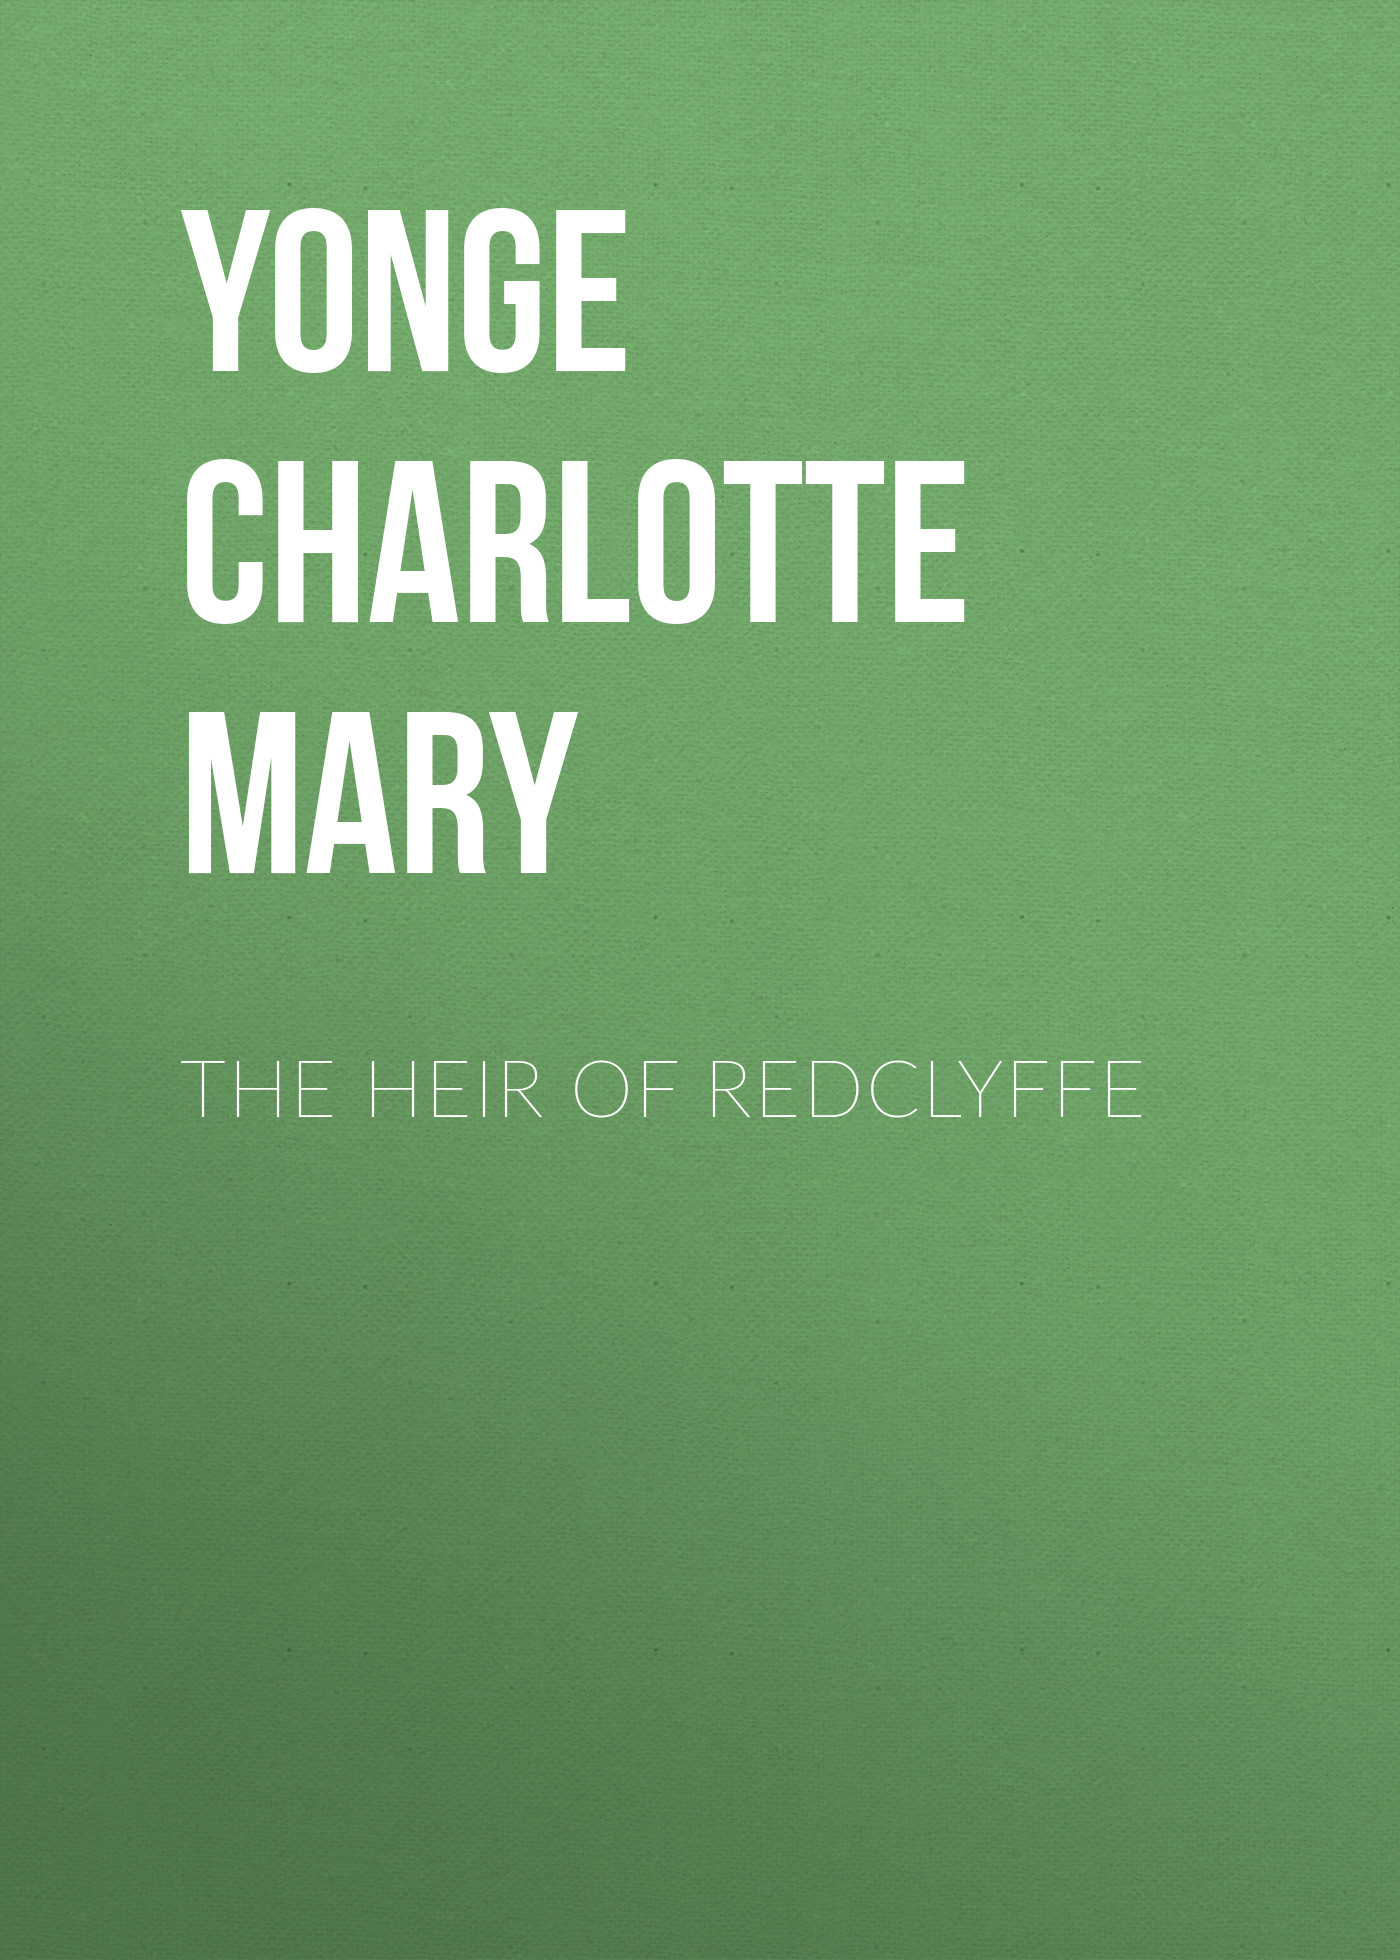 лучшая цена Yonge Charlotte Mary The Heir of Redclyffe